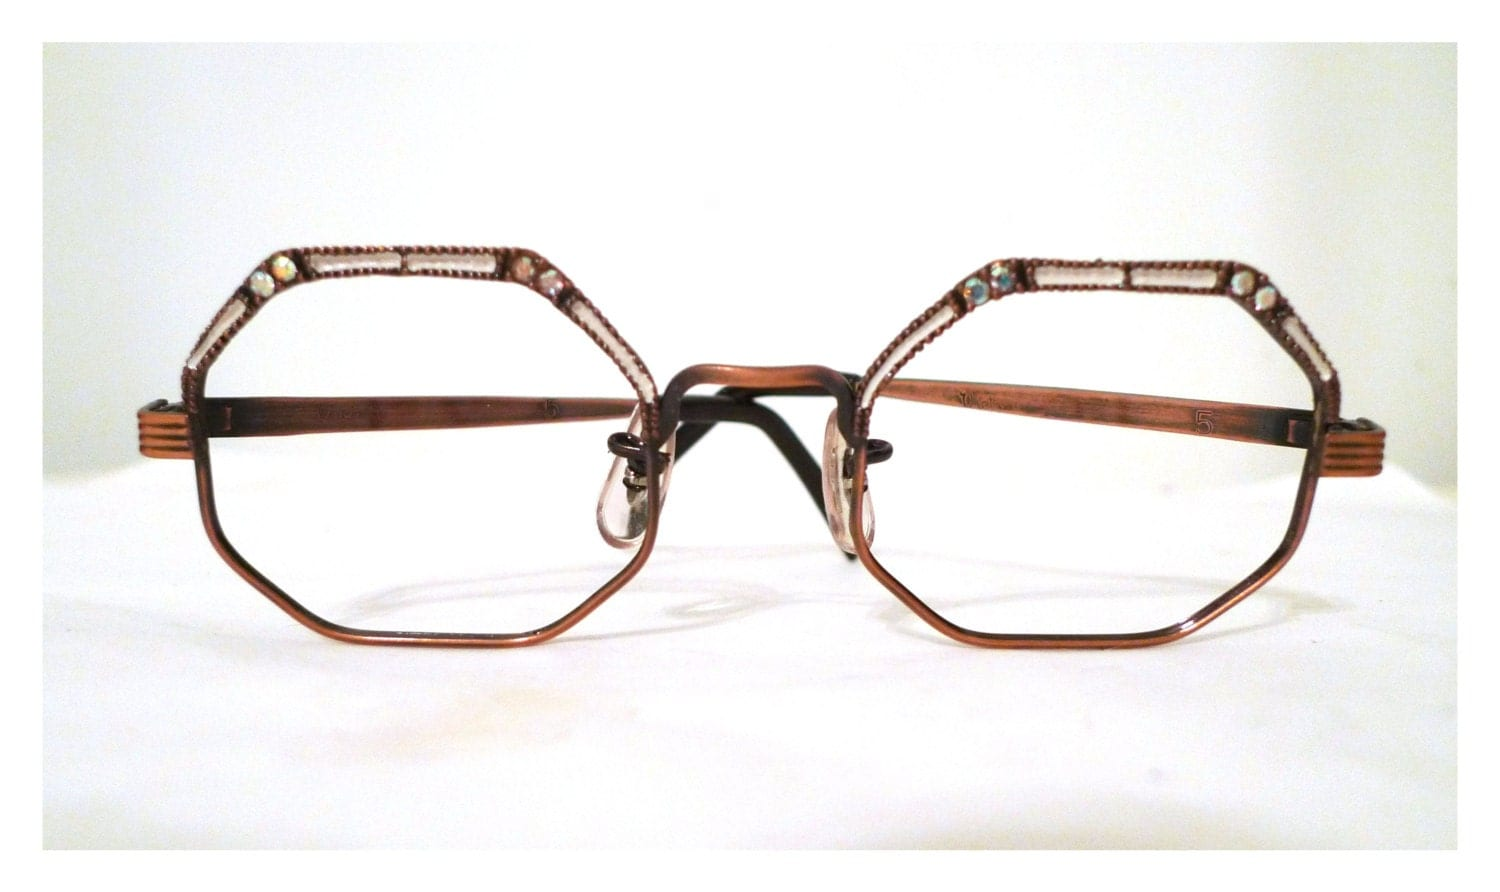 Designer Eyeglass Frames Bling : 12K GF Rhinestone Hexagonal Eyeglass Frames with Bronze